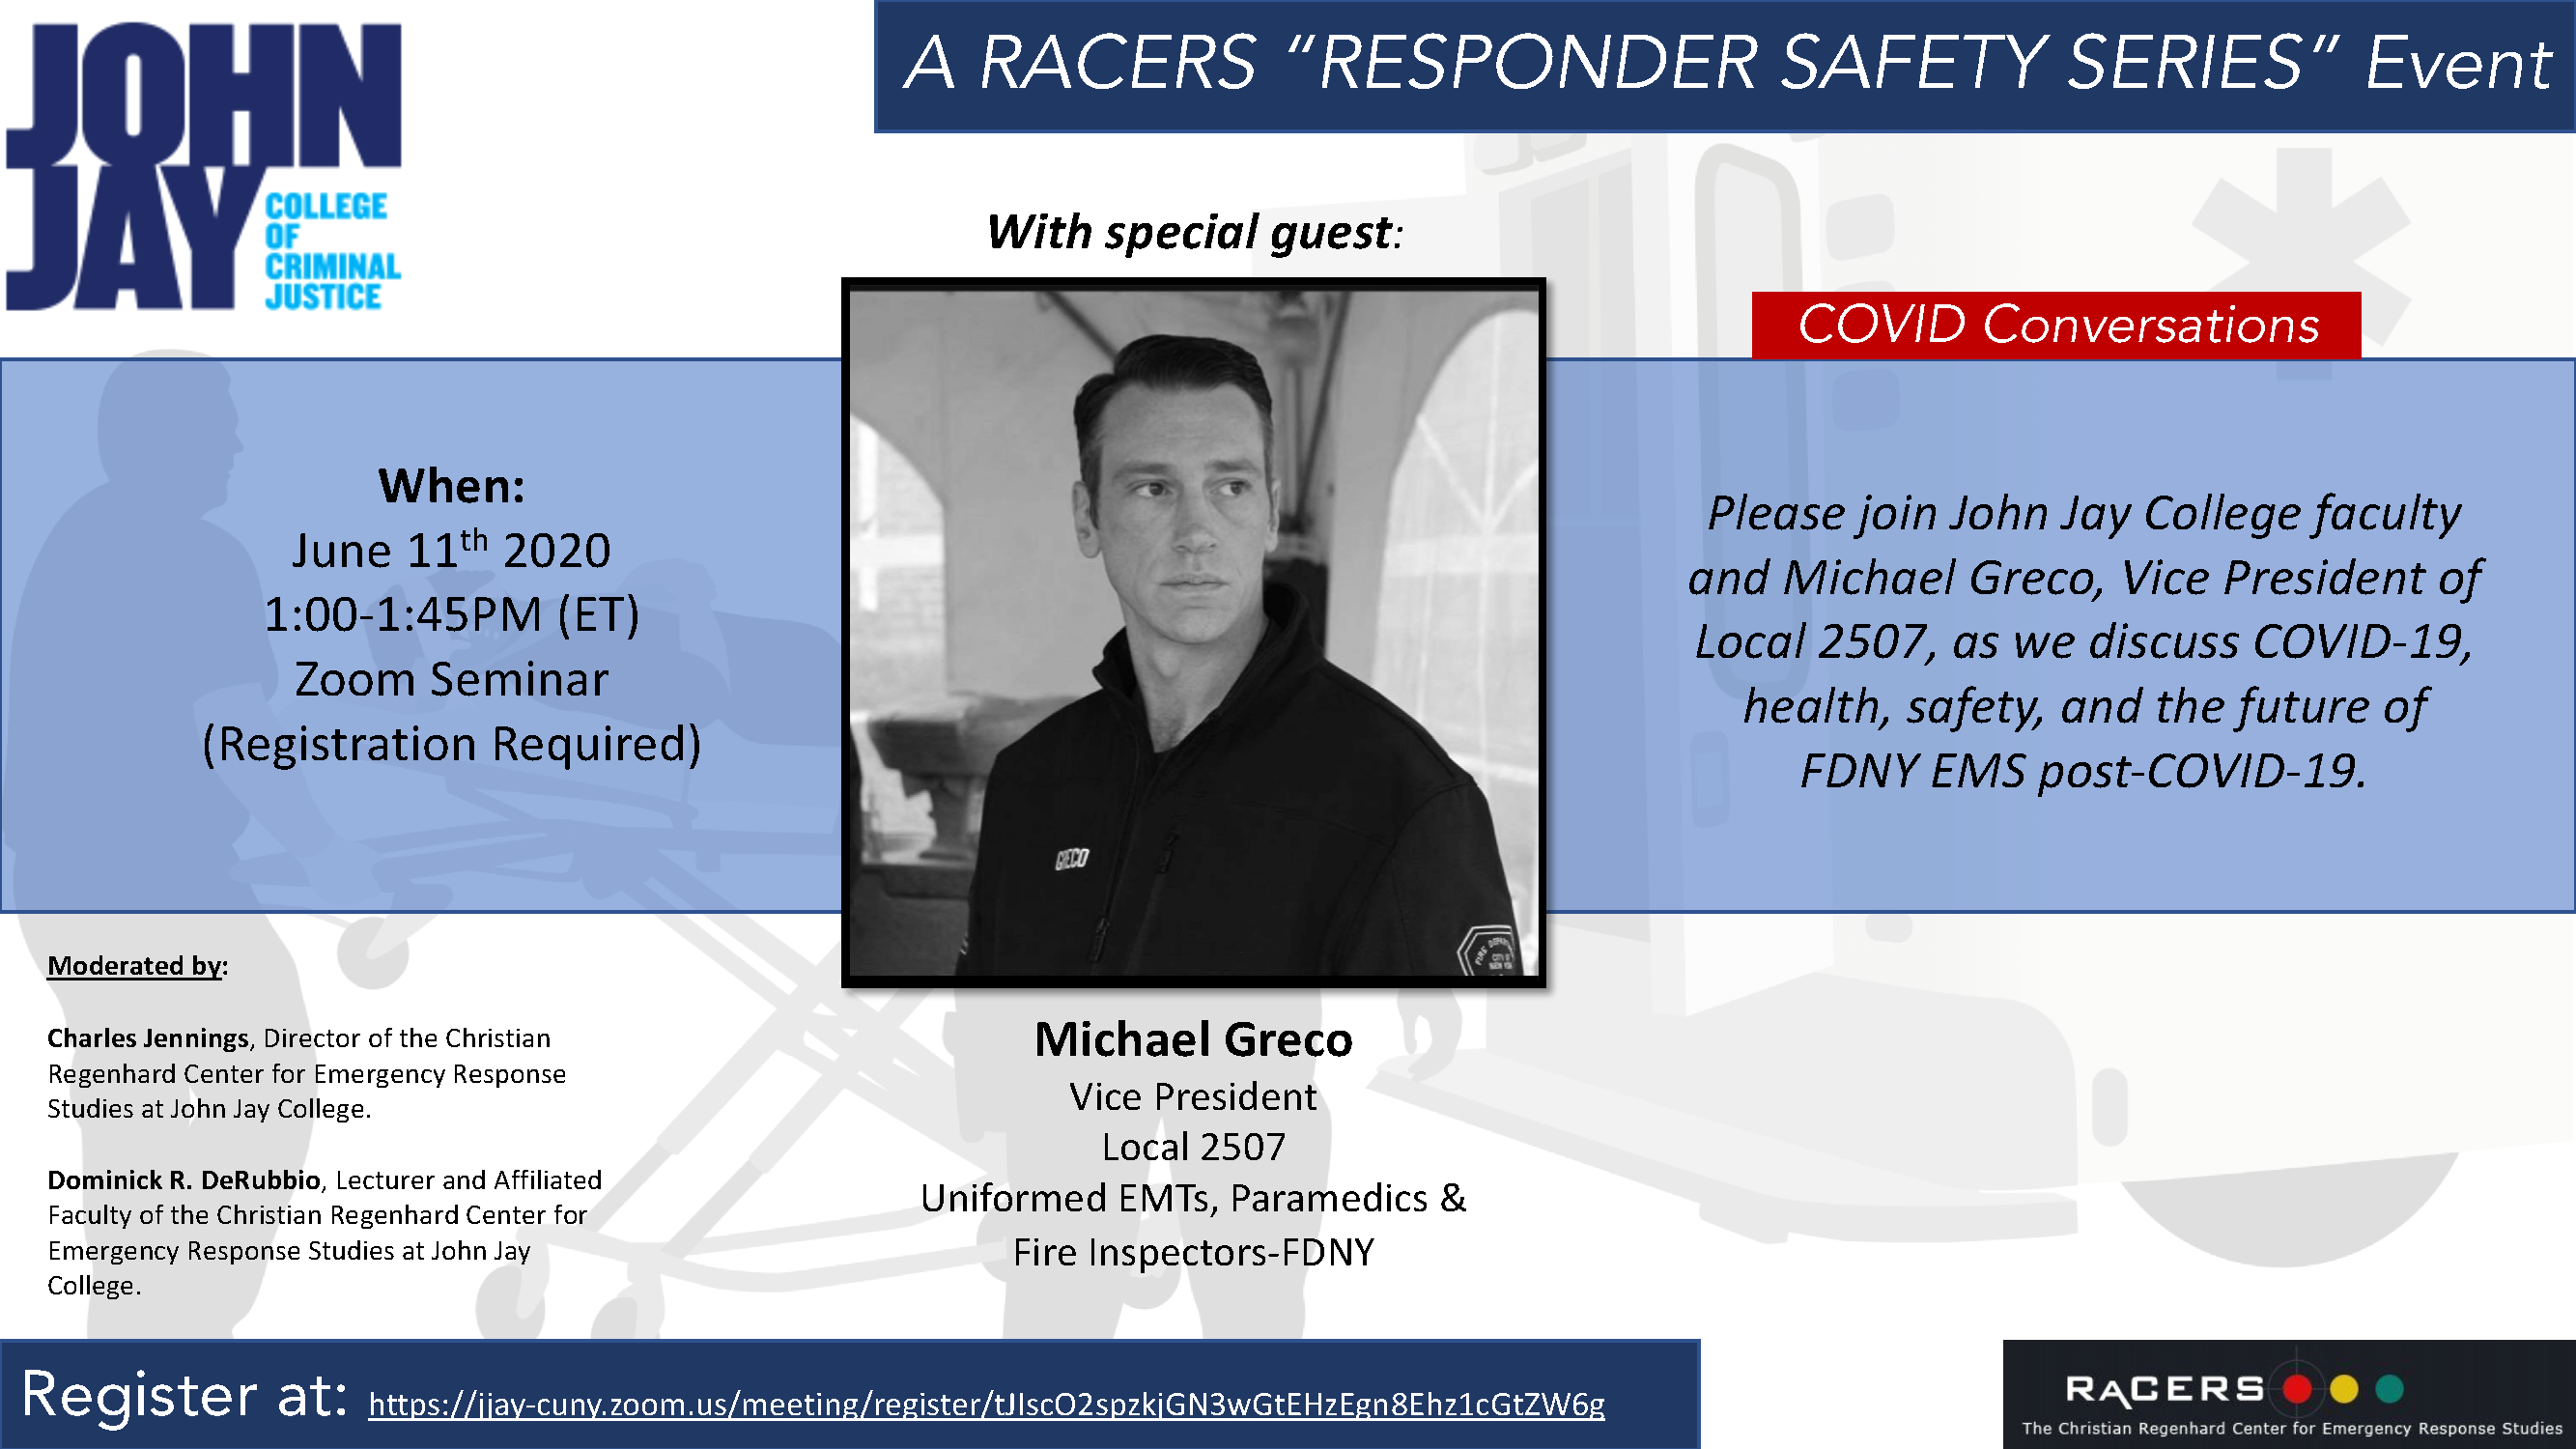 RaCERS Goes Online with Seminar Series: First Up, Michael Greco from FDNY Local 2507